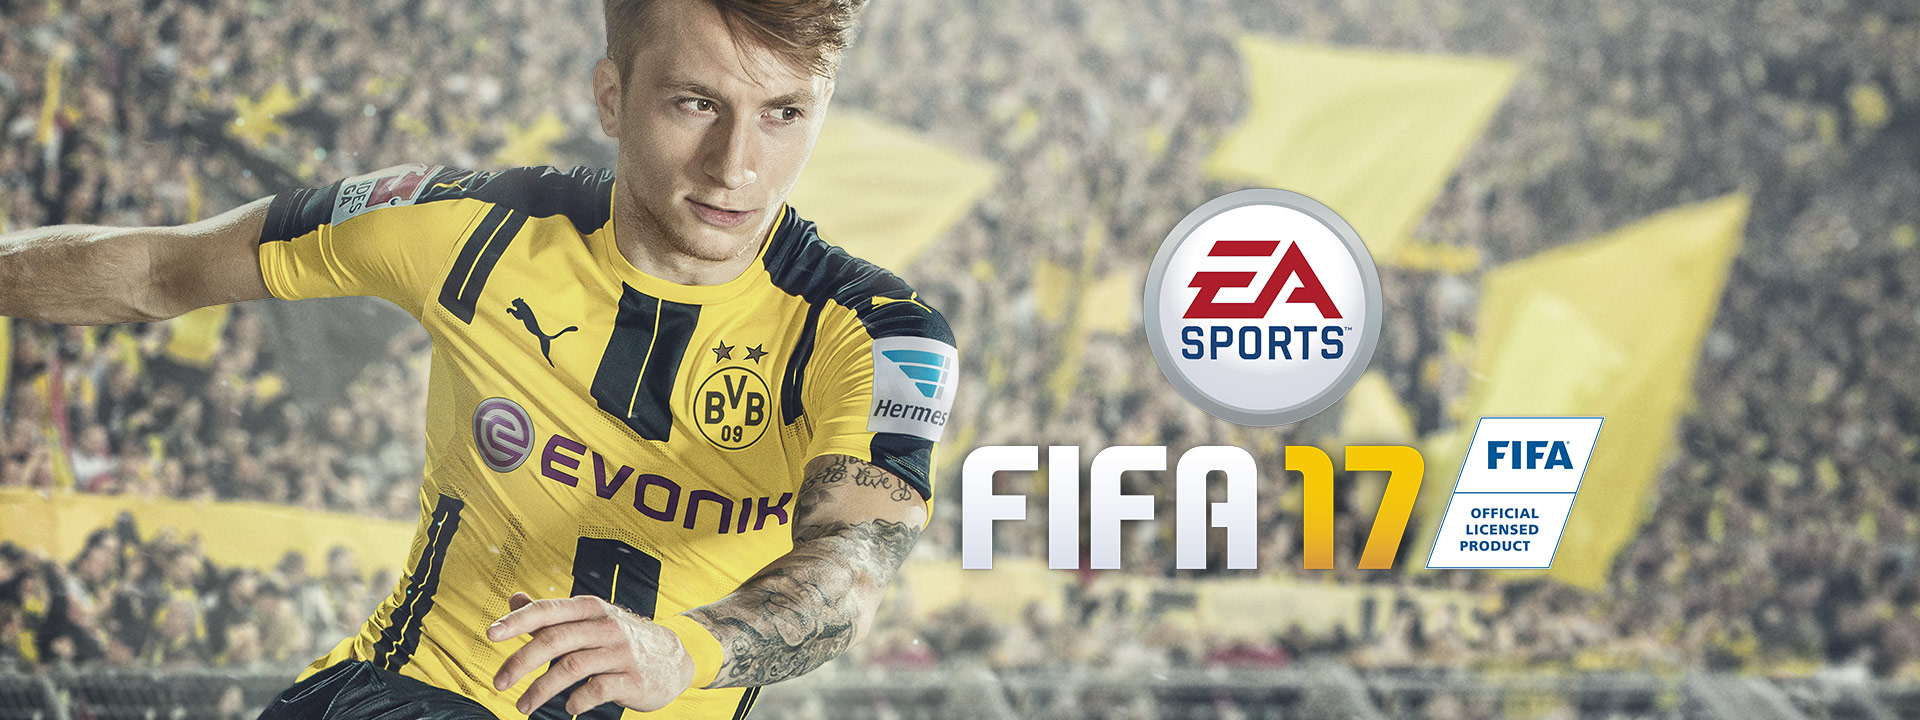 La Demo di EA SPORTS FIFA 17 per Xbox One è disponibile al download dal Windows Store